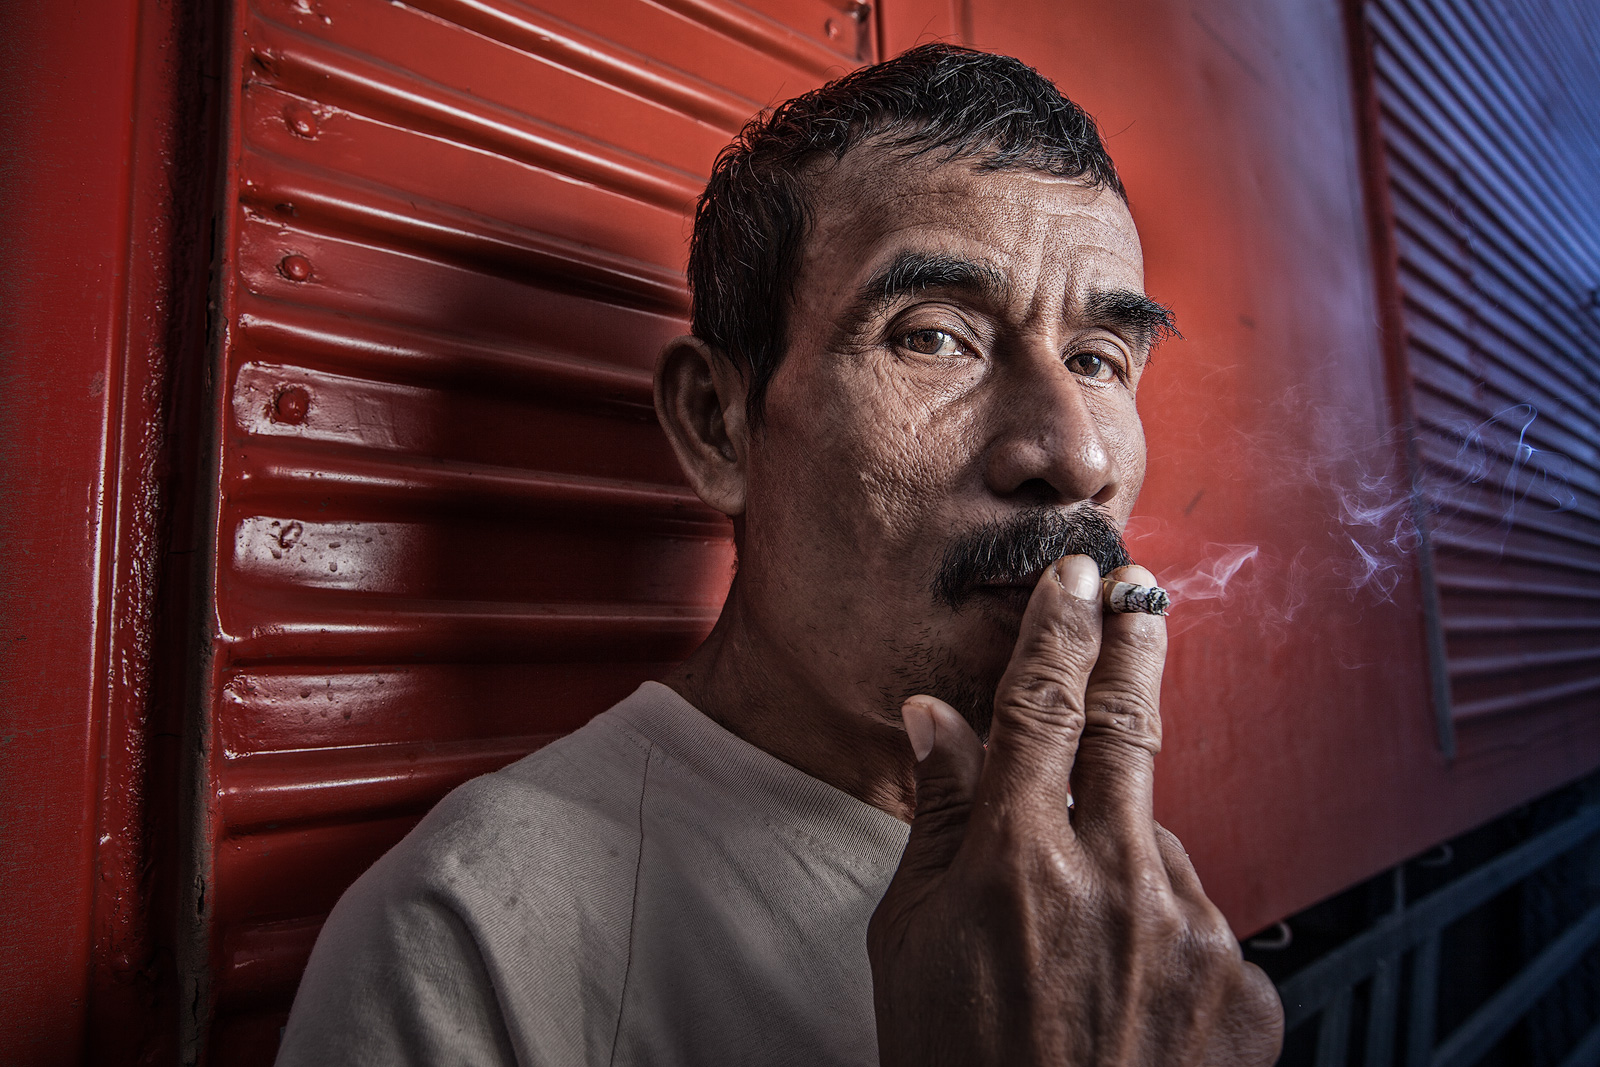 asia,asian,boat,dock,dock worker,environmental portait,indonesia,indonesian,jakarta,java,portrait,ship,smoking,sunda kelapa,west java, photo